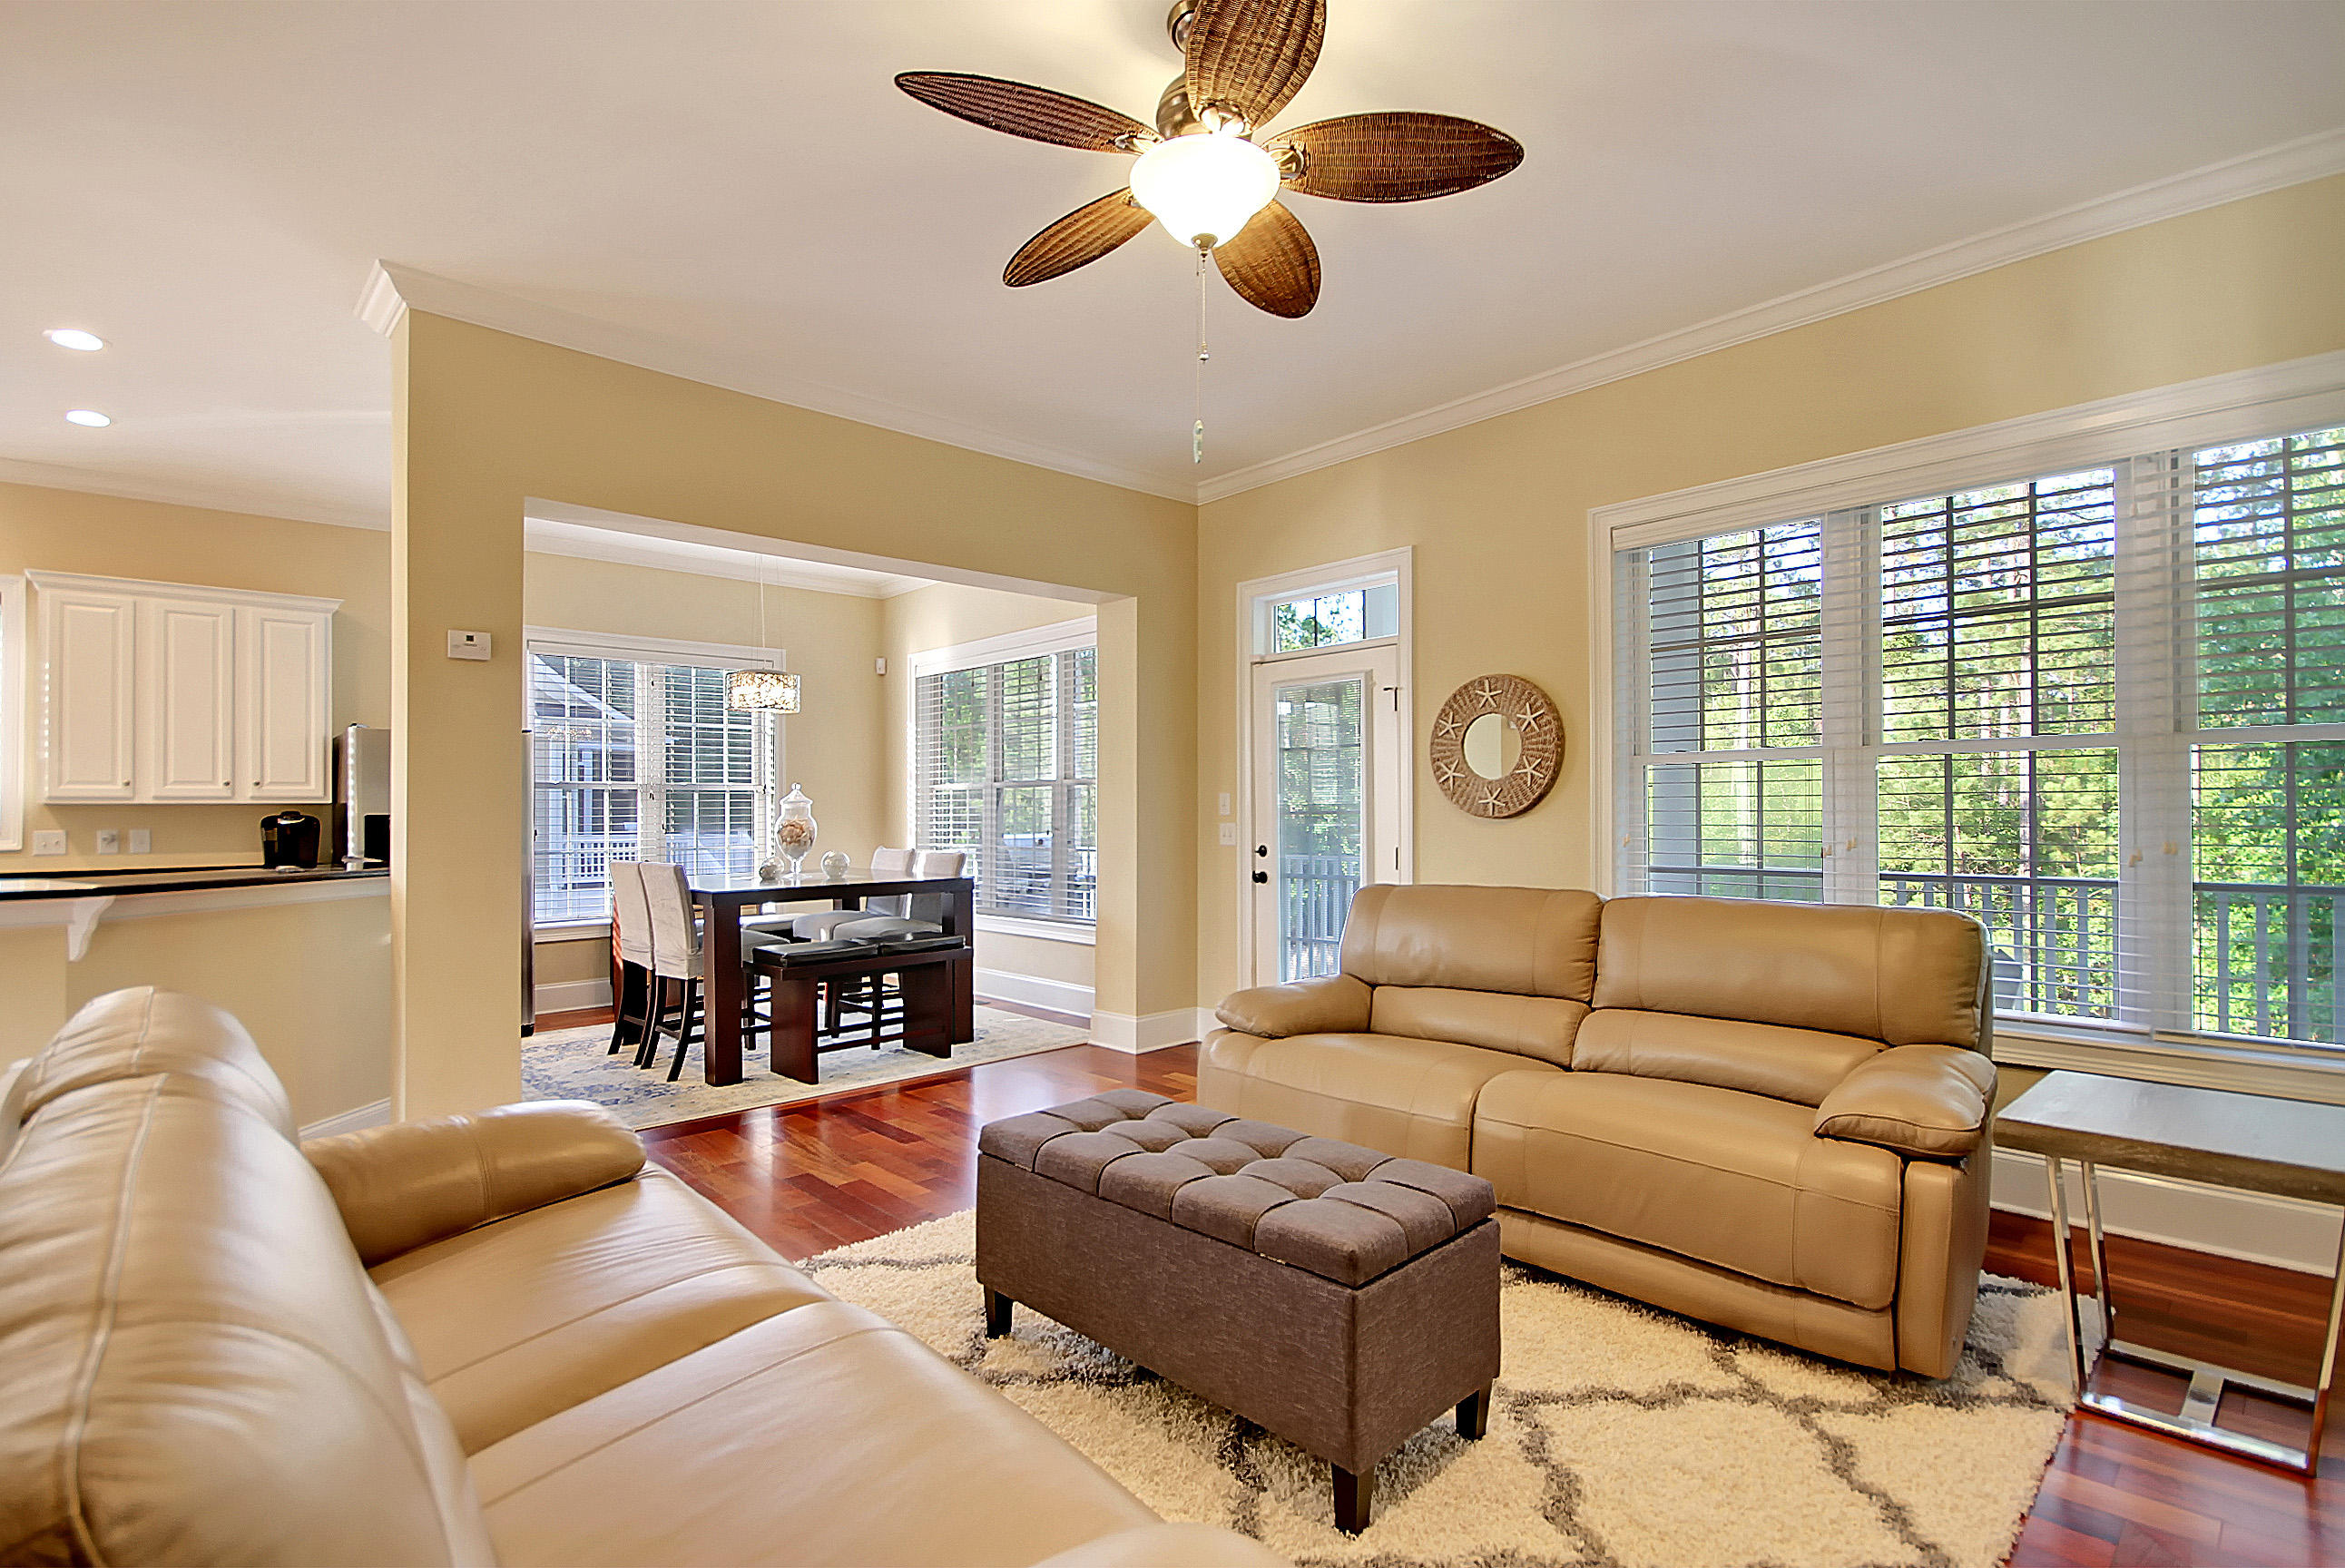 Rivertowne Country Club Homes For Sale - 2200 Branch Creek, Mount Pleasant, SC - 35